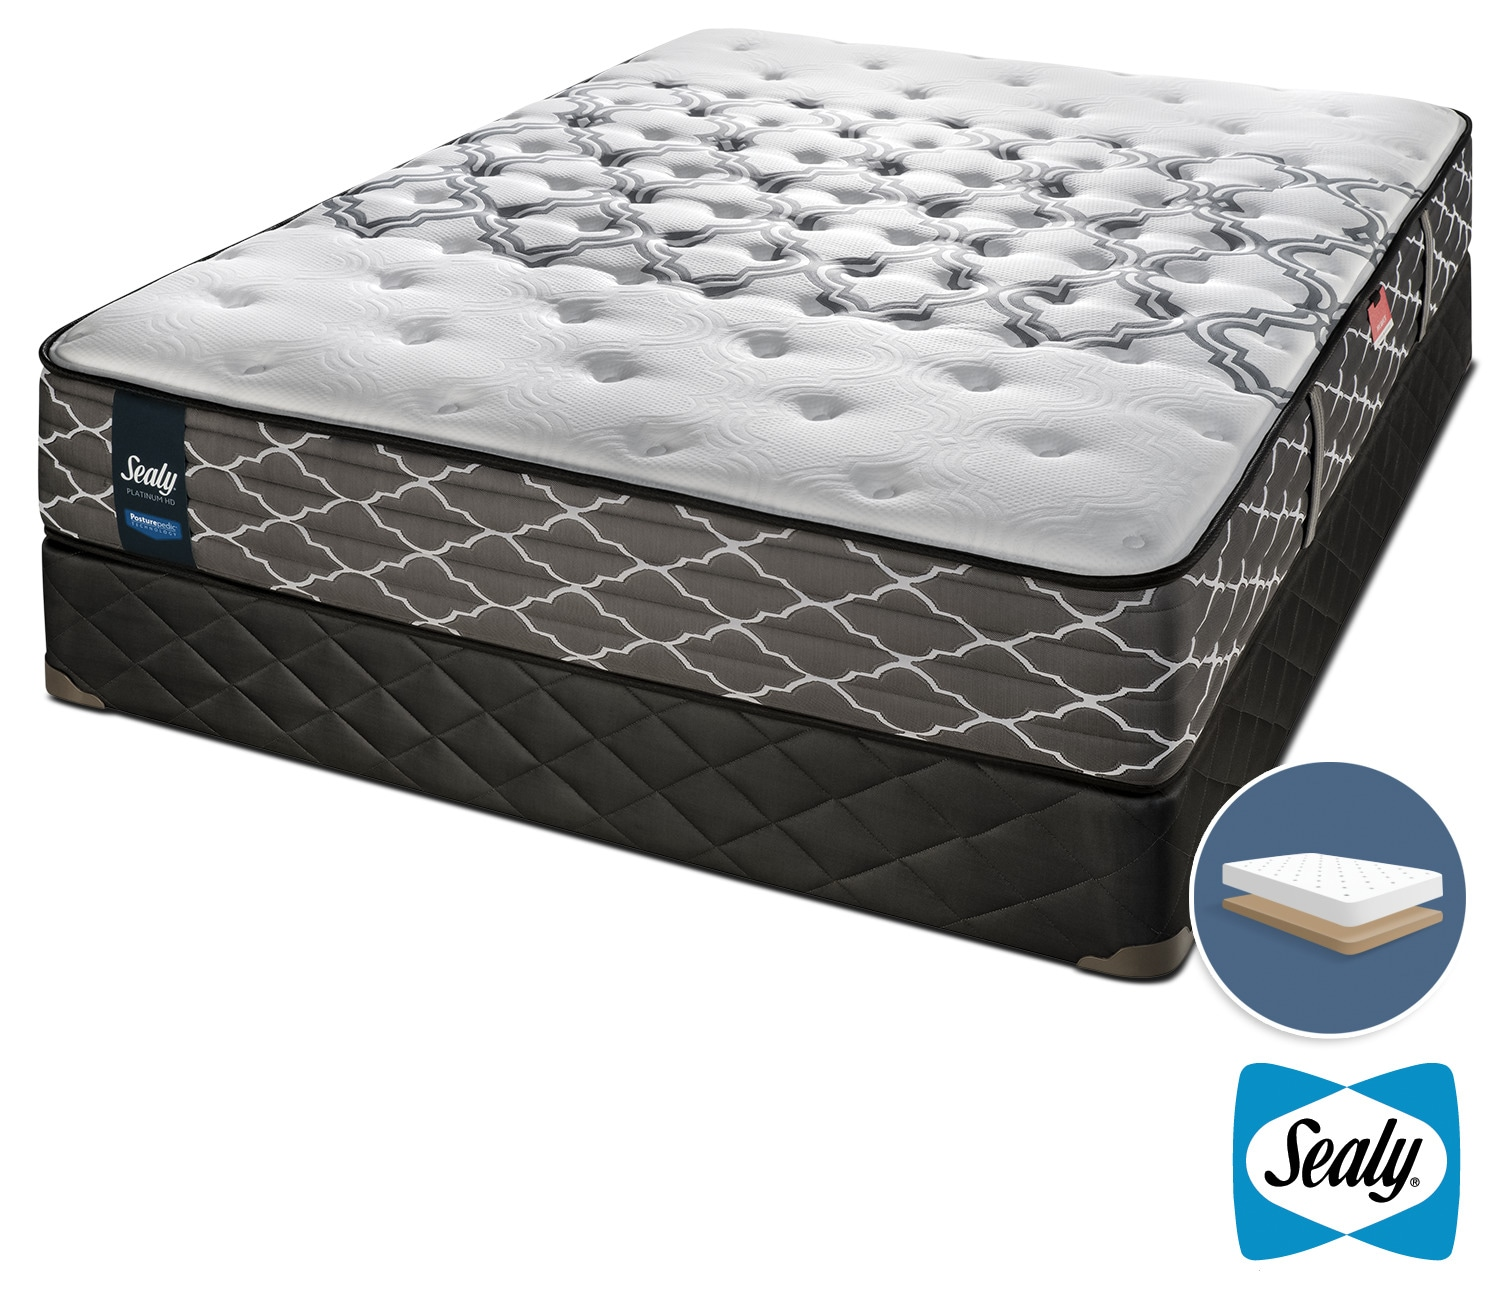 Sealy Late Night Hybrid Extra Firm Queen Mattress and Low-Profile Boxspring Set